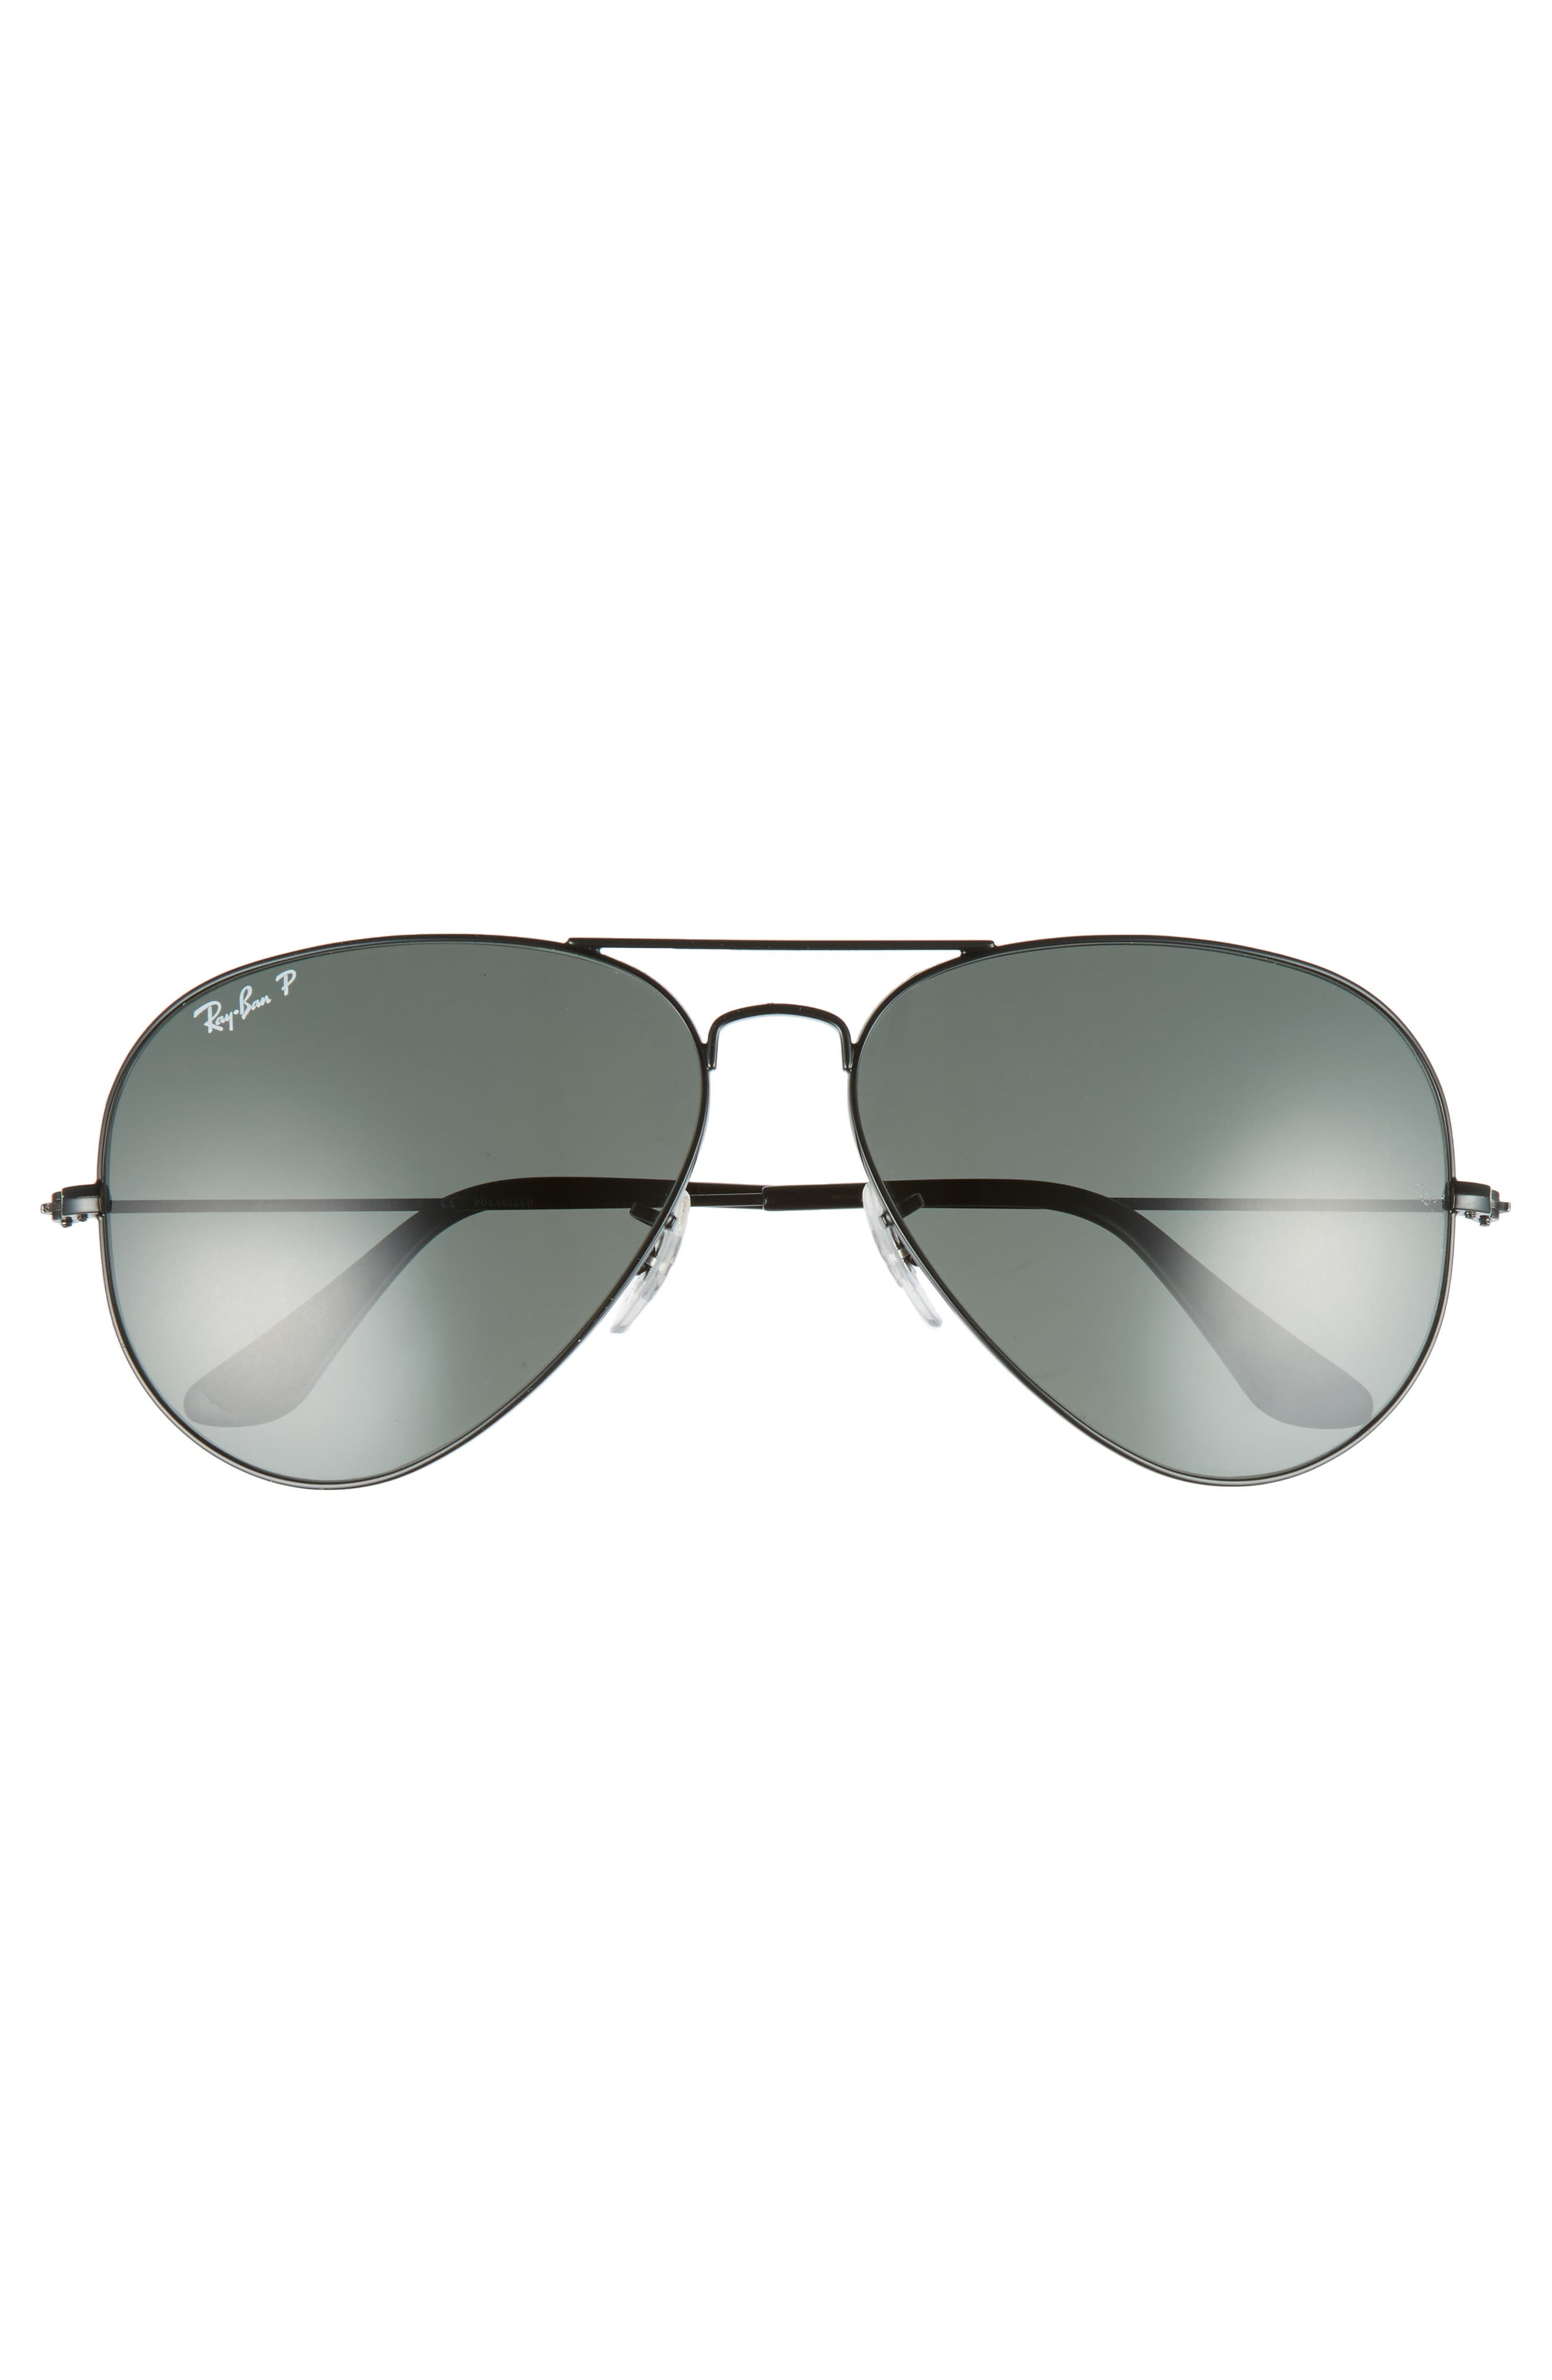 Original 62mm Polarized Aviator Sunglasses,                             Alternate thumbnail 3, color,                             Black/ Polarized